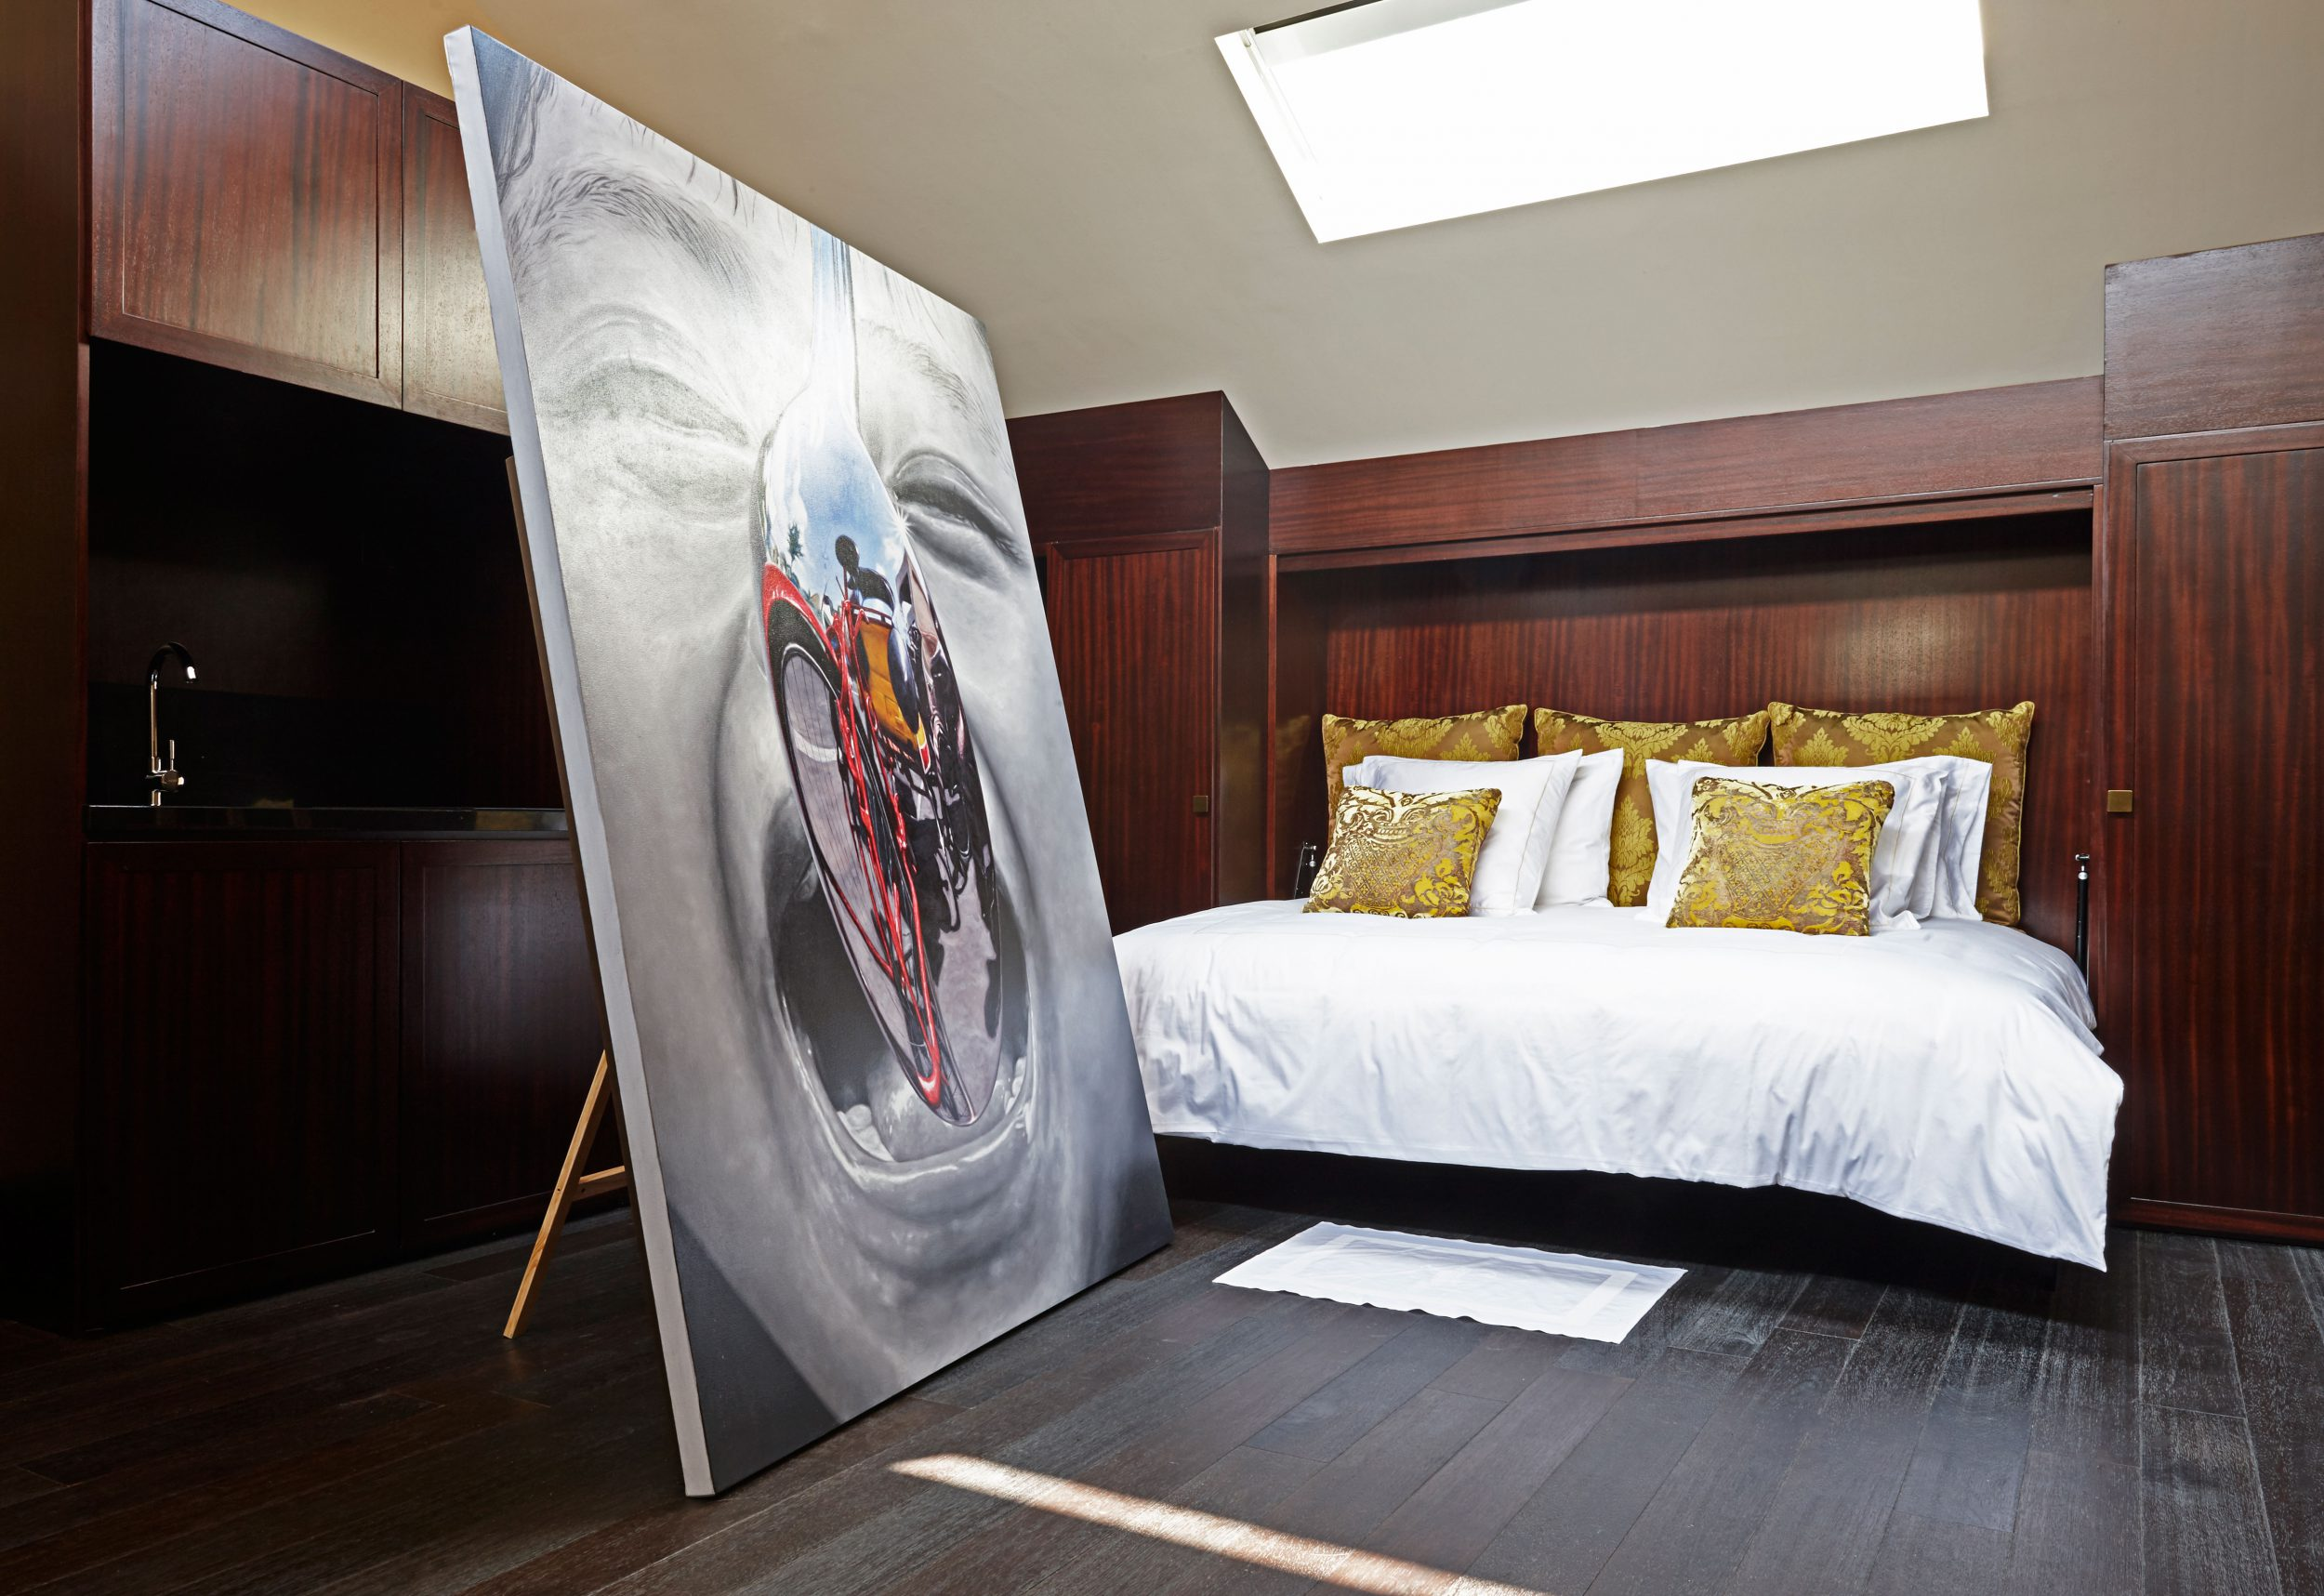 Huge painting by a bed in a art suite of Hotel Vagabond, Singapore